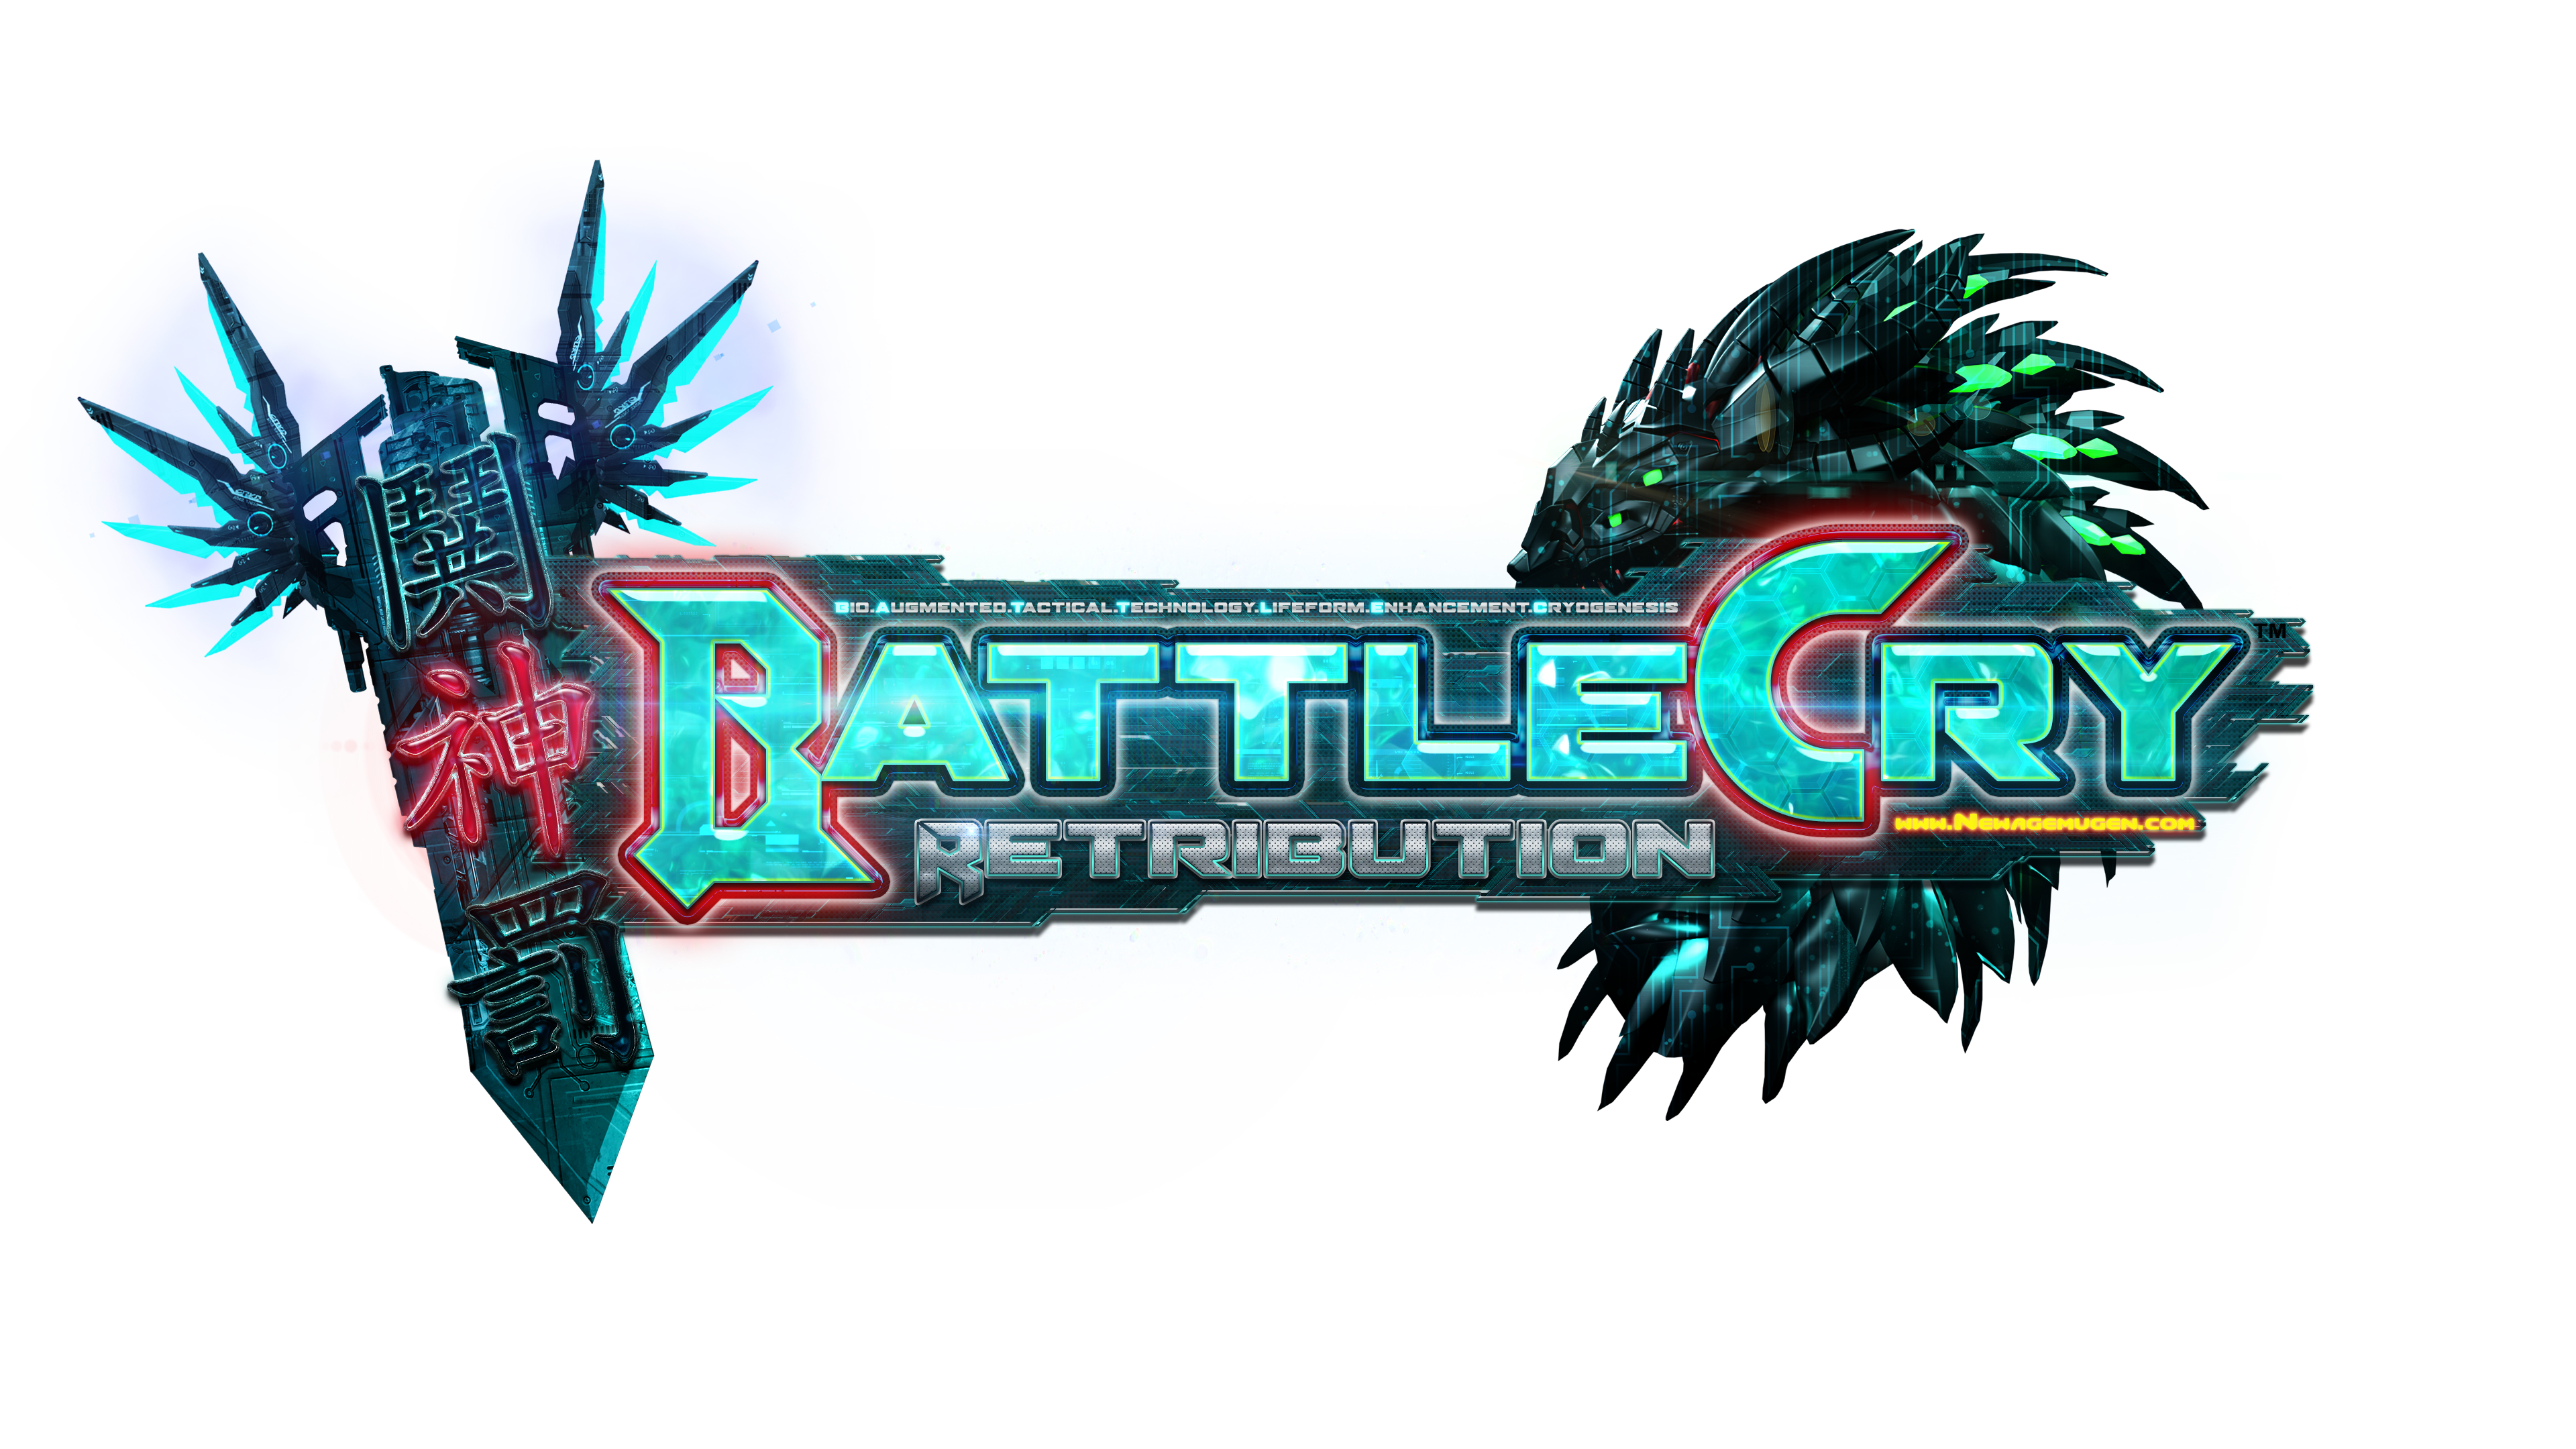 [ACTIVE COMMISSION]BATTLECRY: RETRIBUTION SP Project PARTIII - Cutsom FightFX System (For GRAYFOX/Lunalcard55/CancermanXIII/Oxocube) 51221415795_41f9d1c28d_o